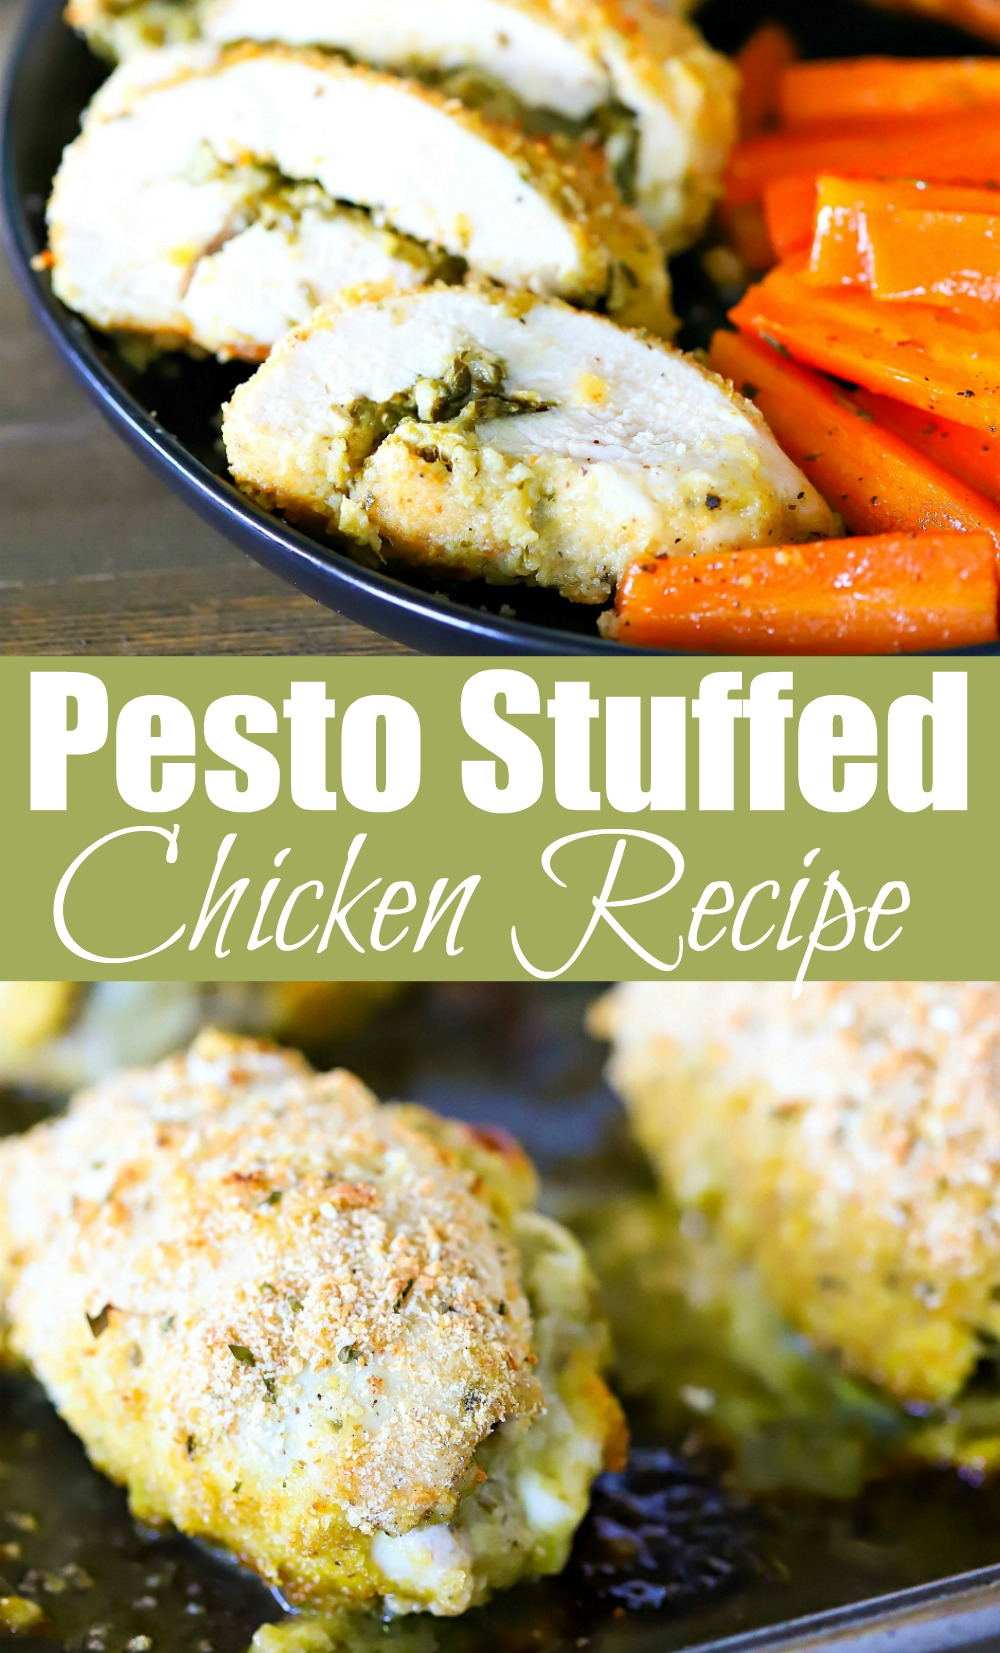 Need an easy dinner recipe? This Pesto Stuffed Chicken Recipe is EVERYTHING! It looks so fancy but it's so easy to make! Use homemade or store-bought pesto and bake this stuffed chicken for a flavorful, delicious and healthy dinner!